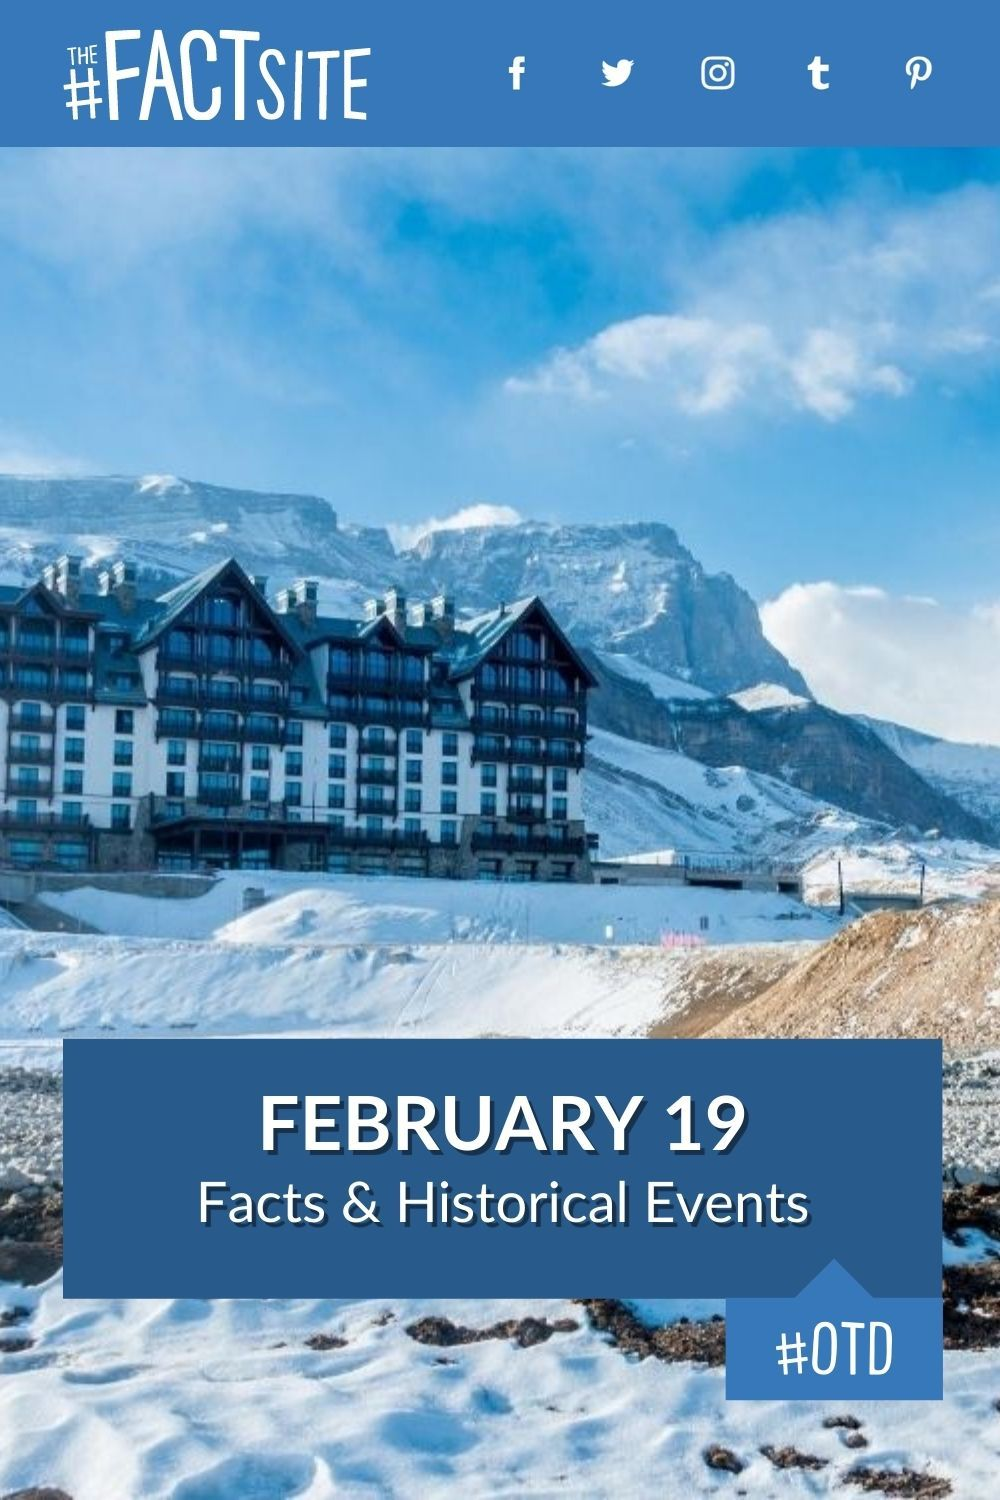 Facts & Historic Events That Happened on February 19